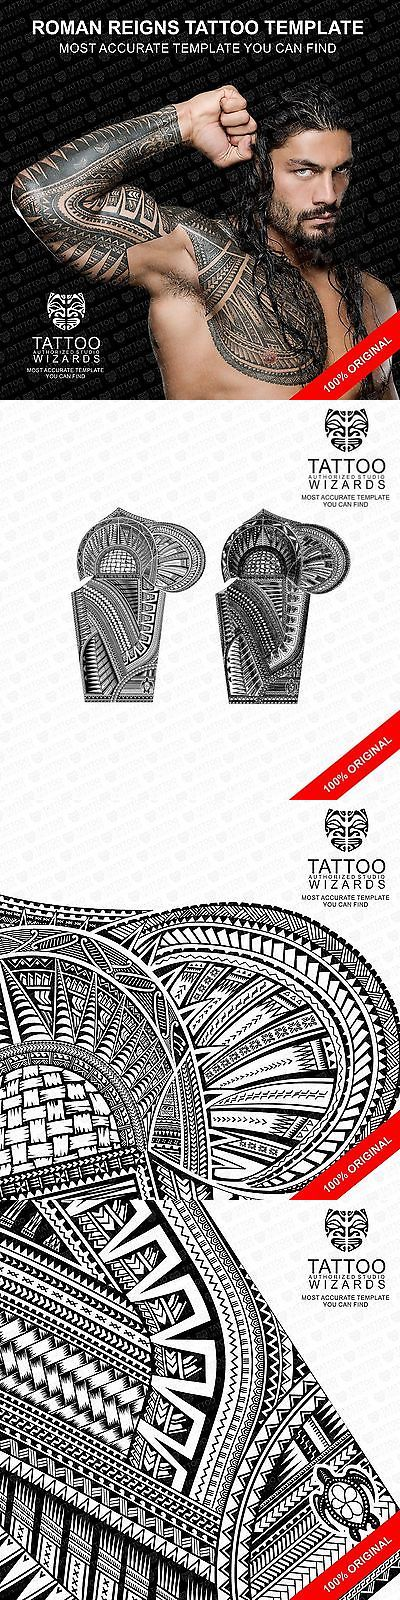 Temporary Tattoos: Roman Reigns Tattoo Stencil Template -> BUY IT NOW ONLY: $149.99 on eBay!